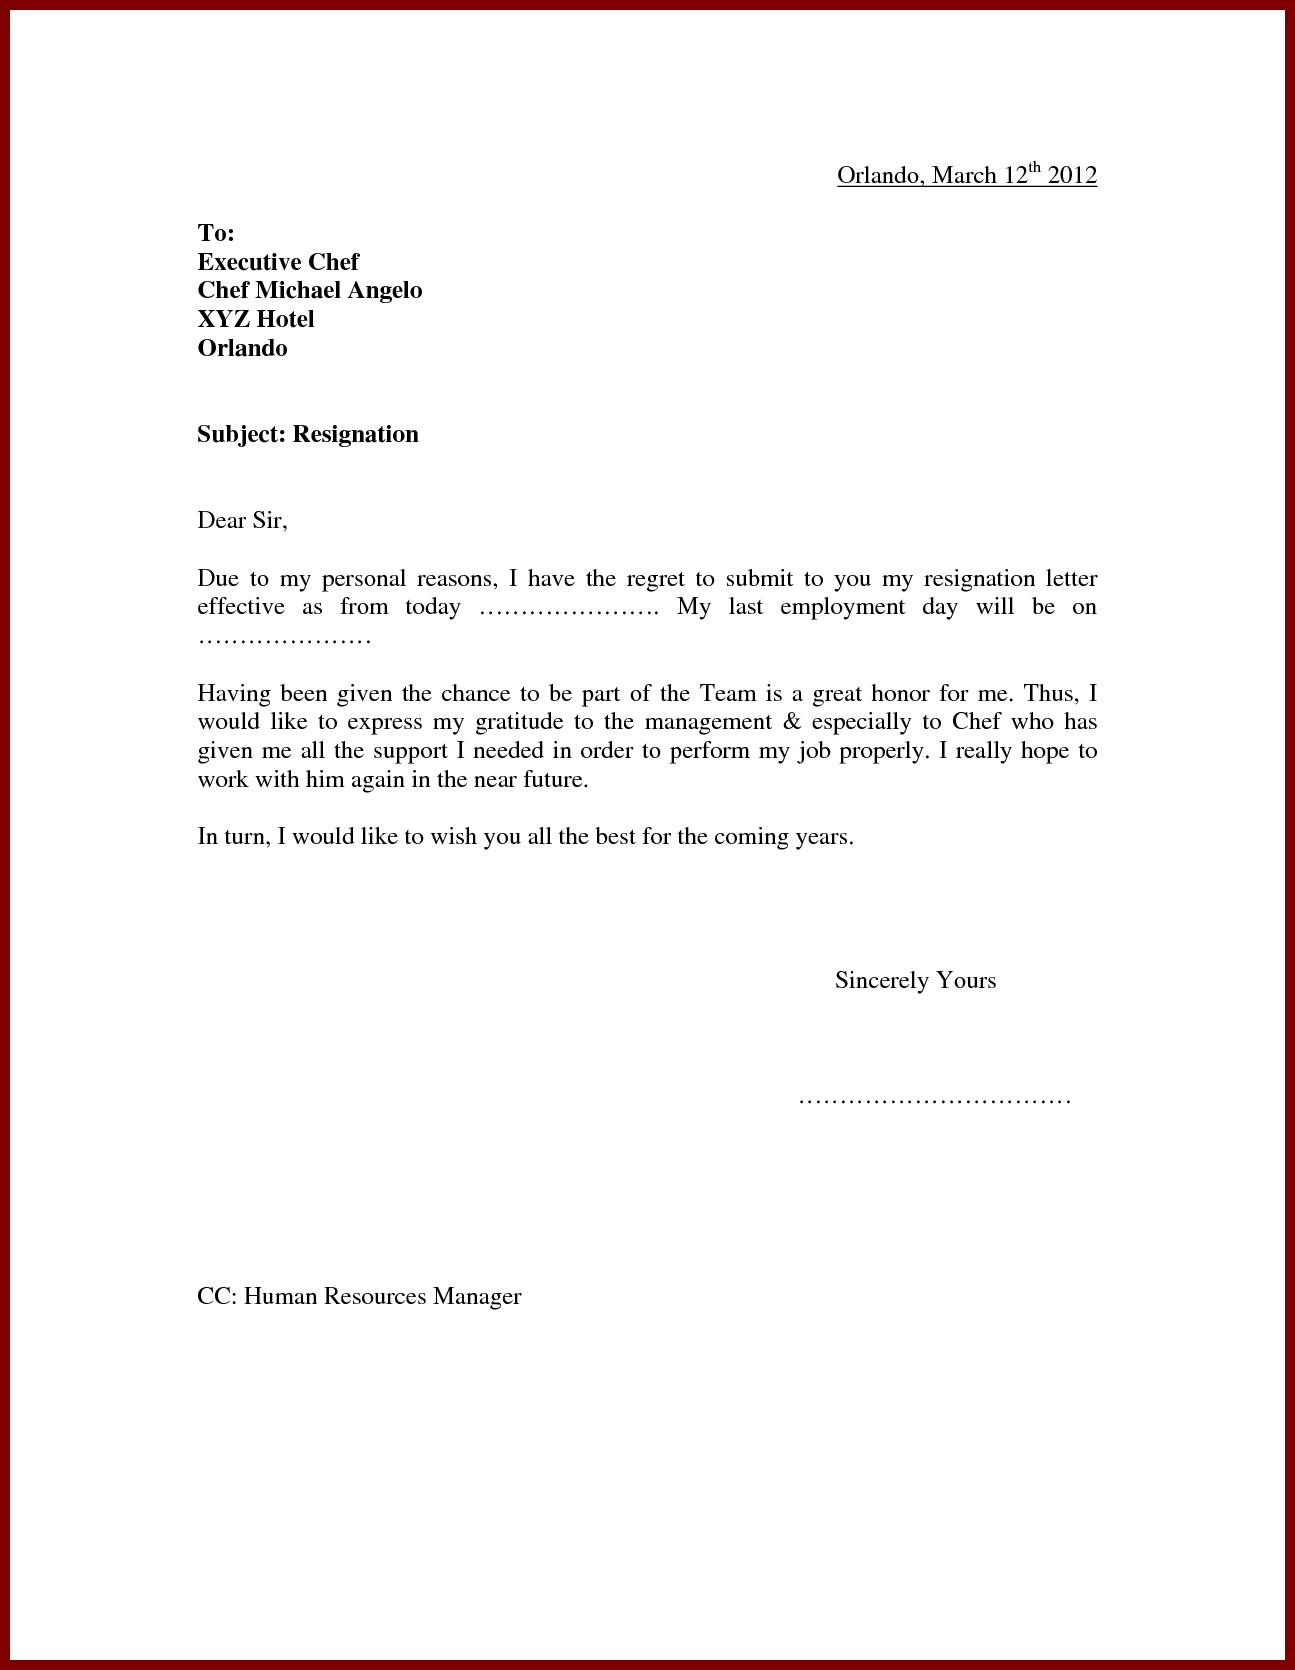 Samples of resignation letters for personal reasons 86650939g 1650 53 kb png sample resignation letter due to personal reason thecheapjerseys Gallery